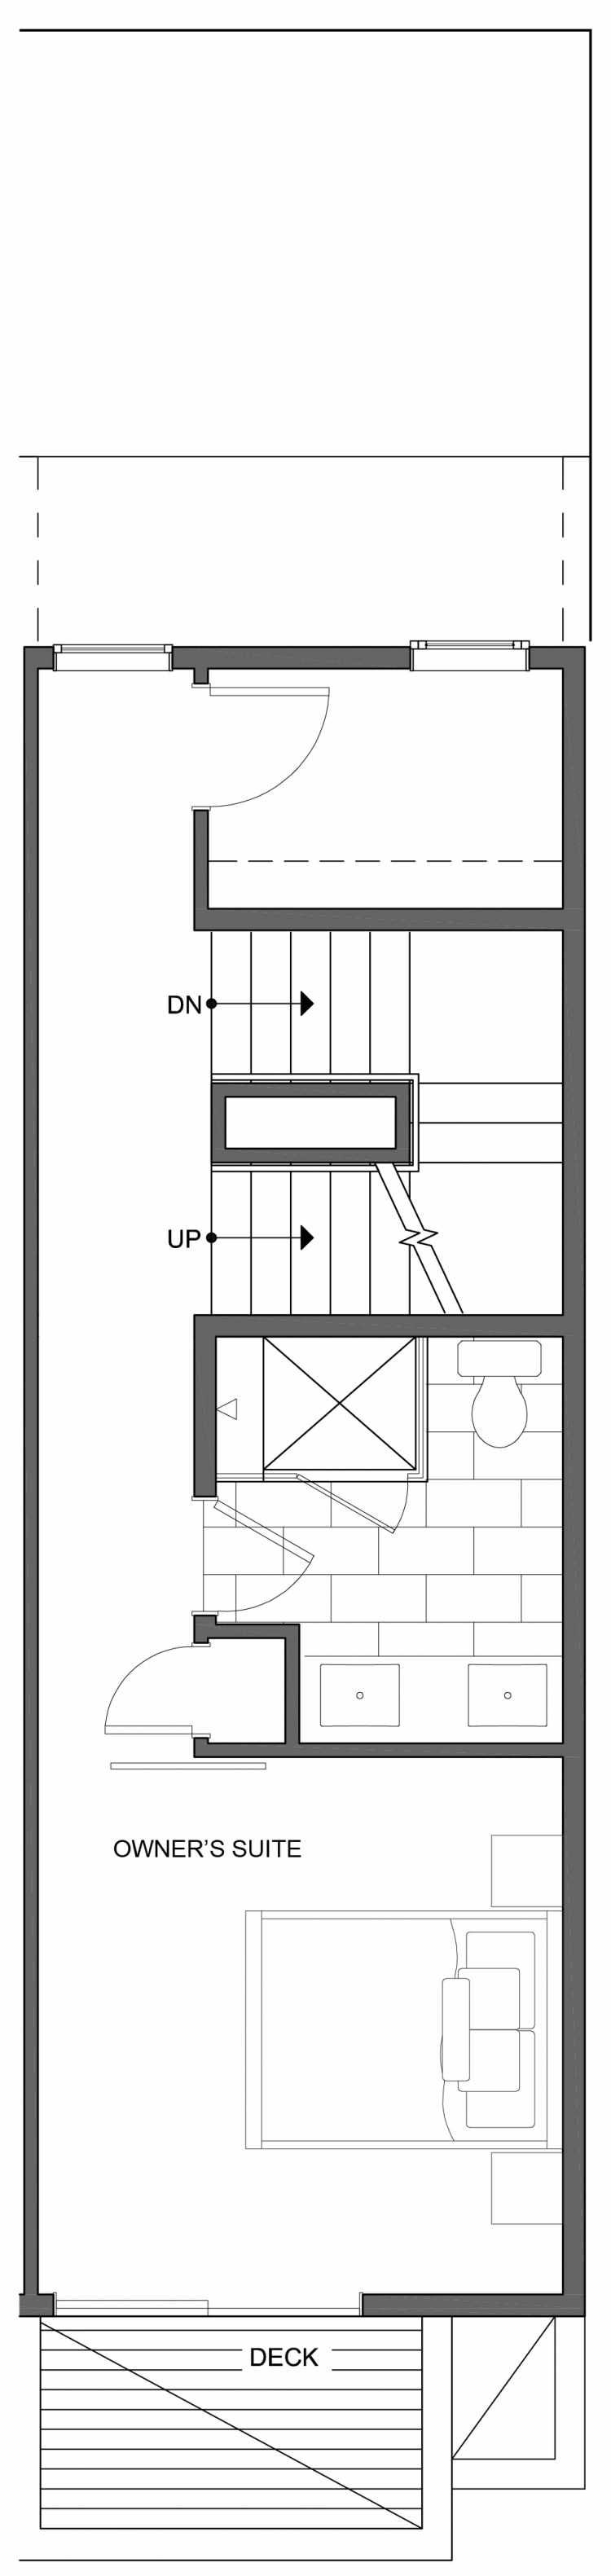 Fourth Floor Plan of 804 N 46th St, One of the Nino 15 West Townhomes in Fremont by Isola Homes